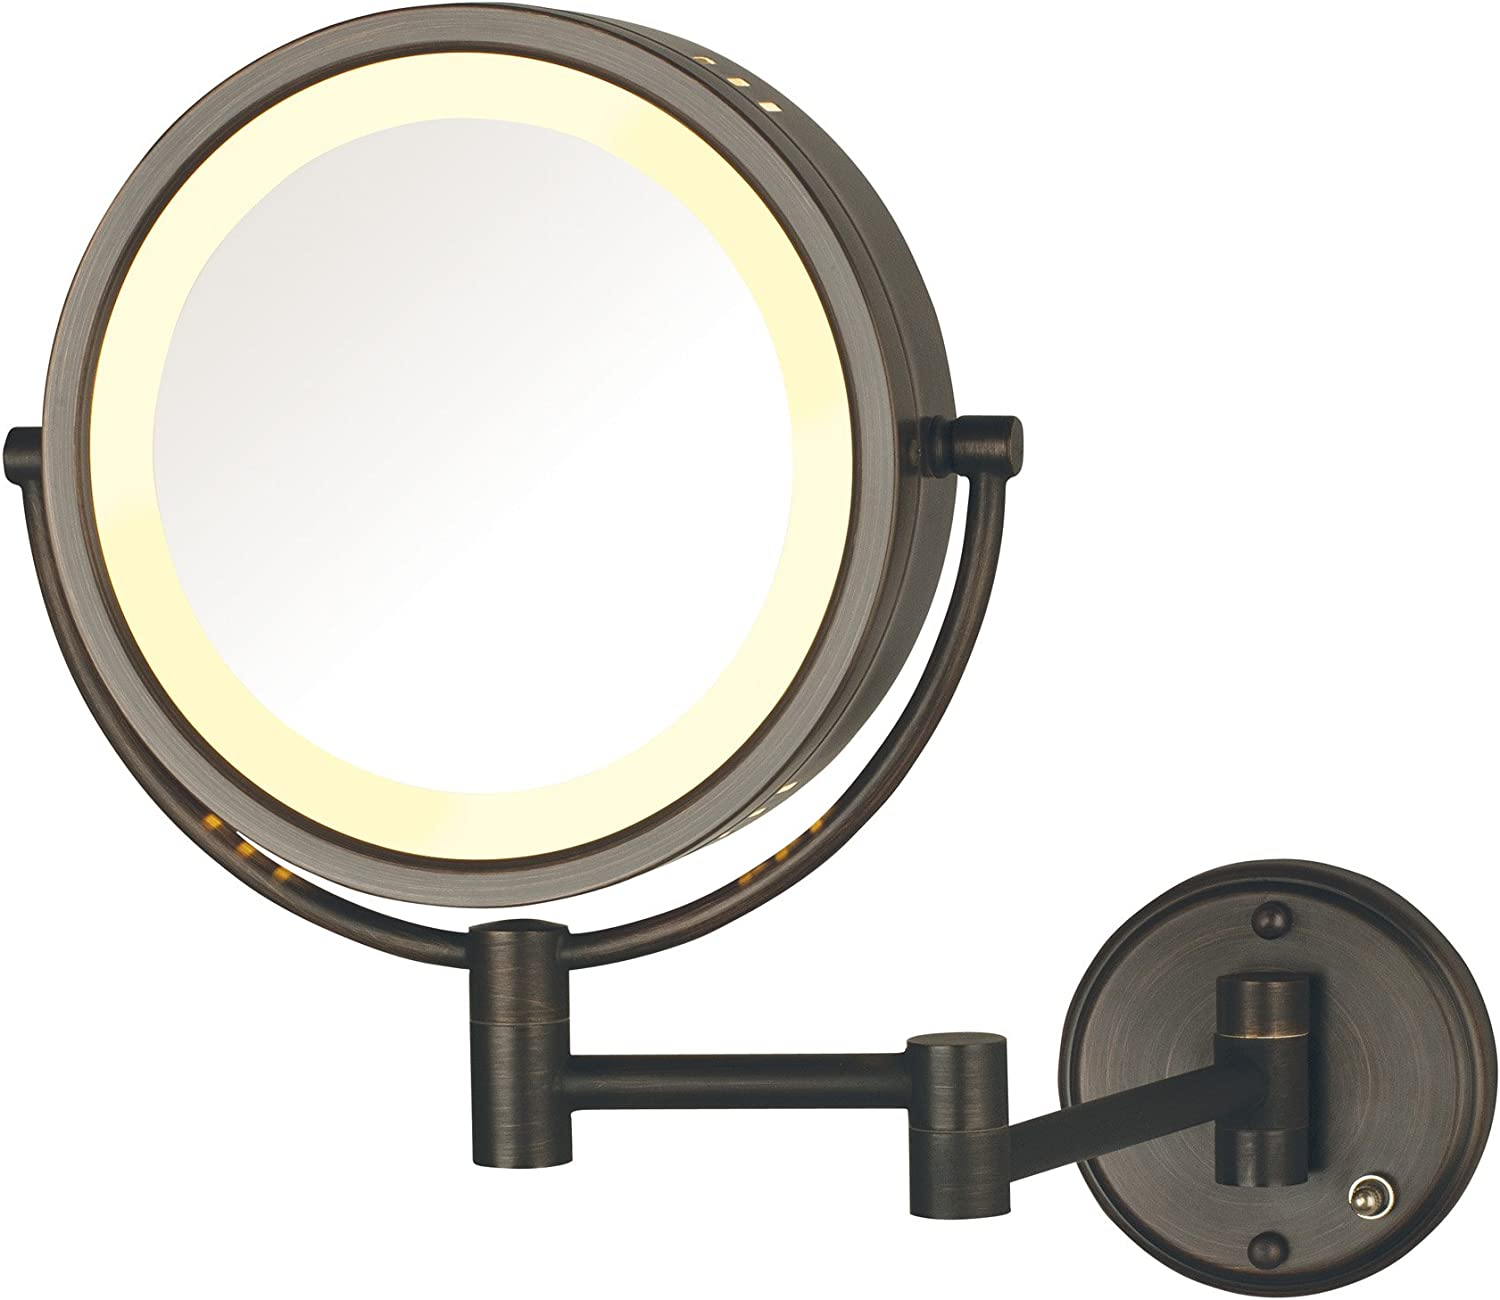 Jerdon HL75BZD 8.5-Inch Lighted Direct Wire Wall Mount Makeup Mirror with 8x Magnification, Bronze Finish